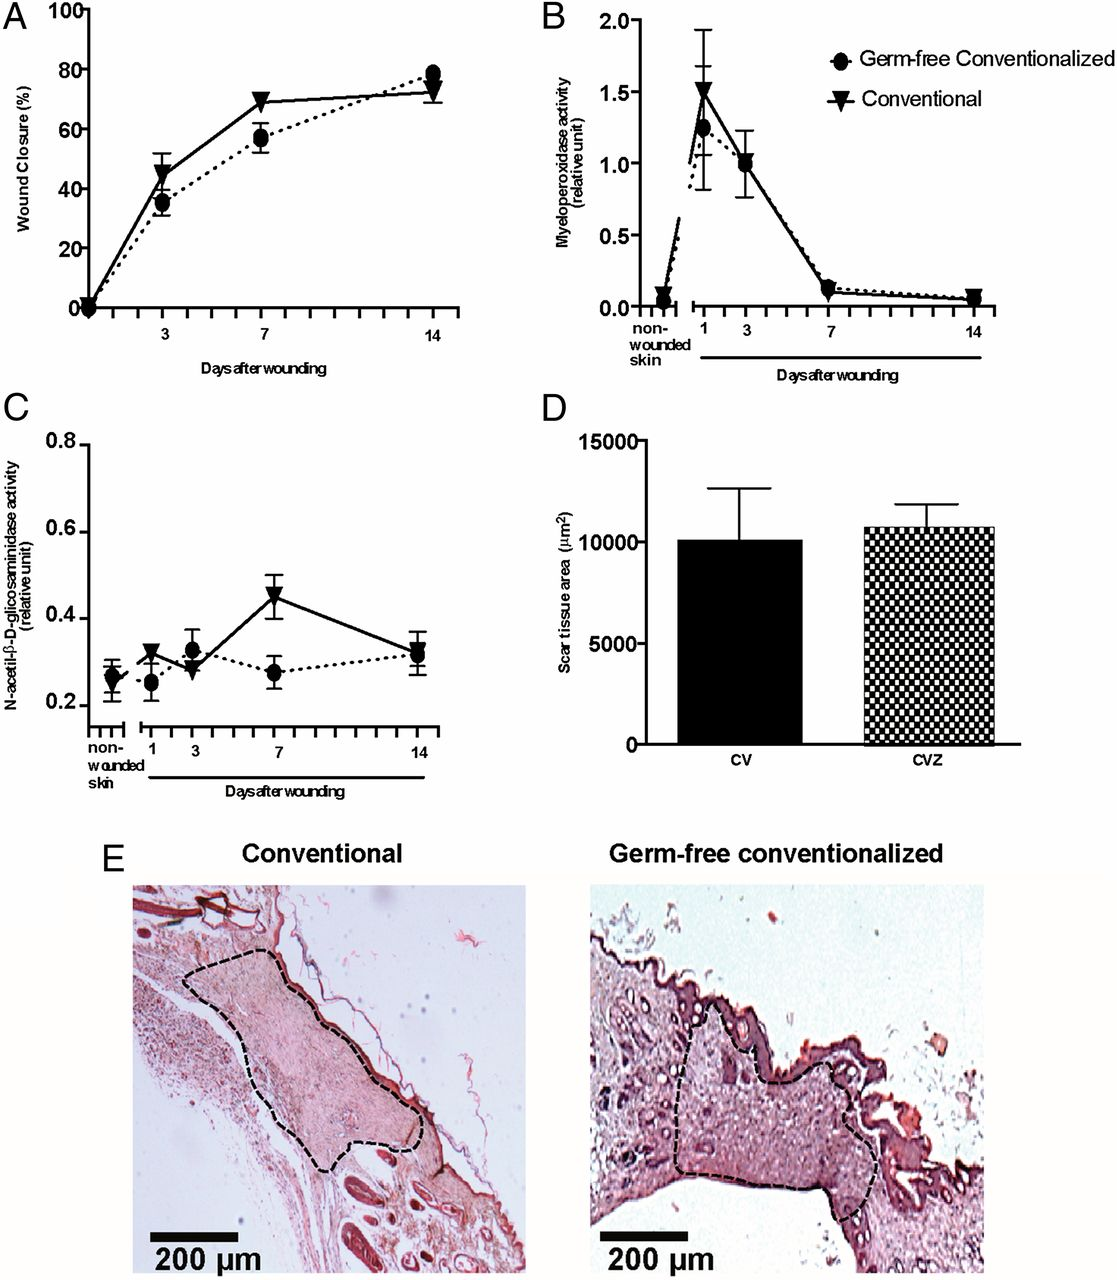 small resolution of gf colonized mice restore wound healing to conventional mouse level